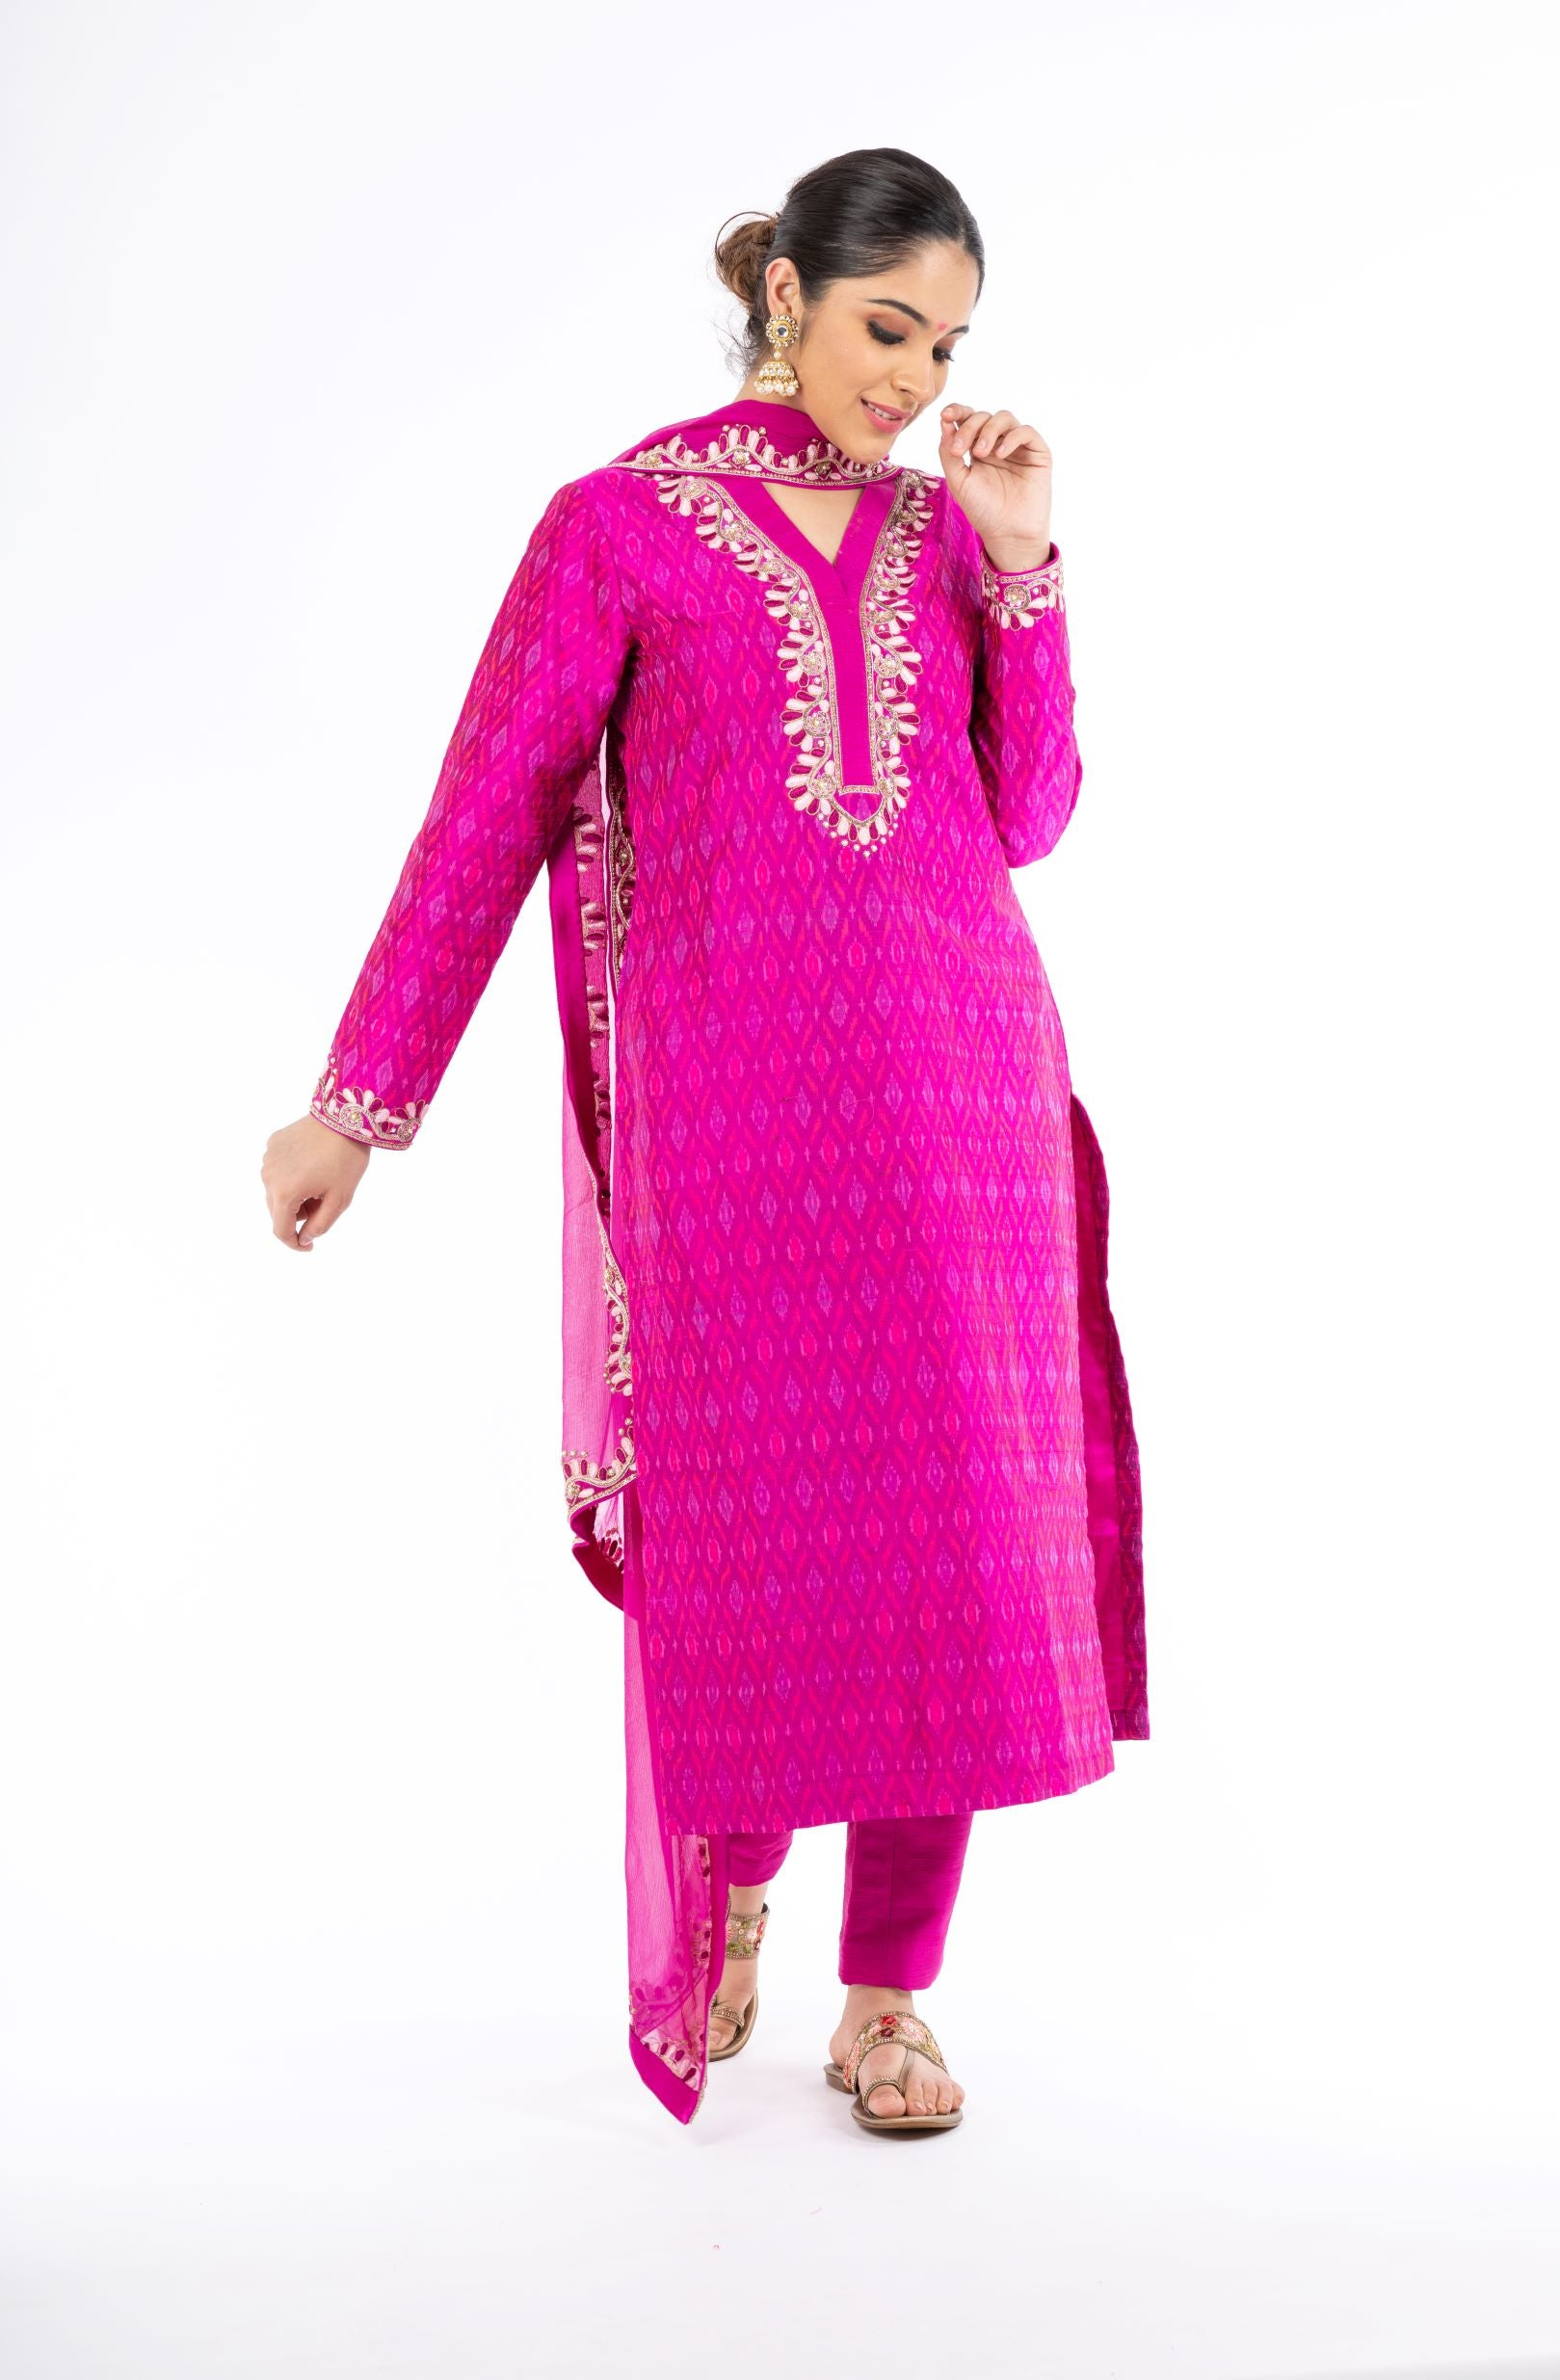 Extra-ordinary Magenta Color Handloom Ikkat and Raw Silk Salwar Kameez